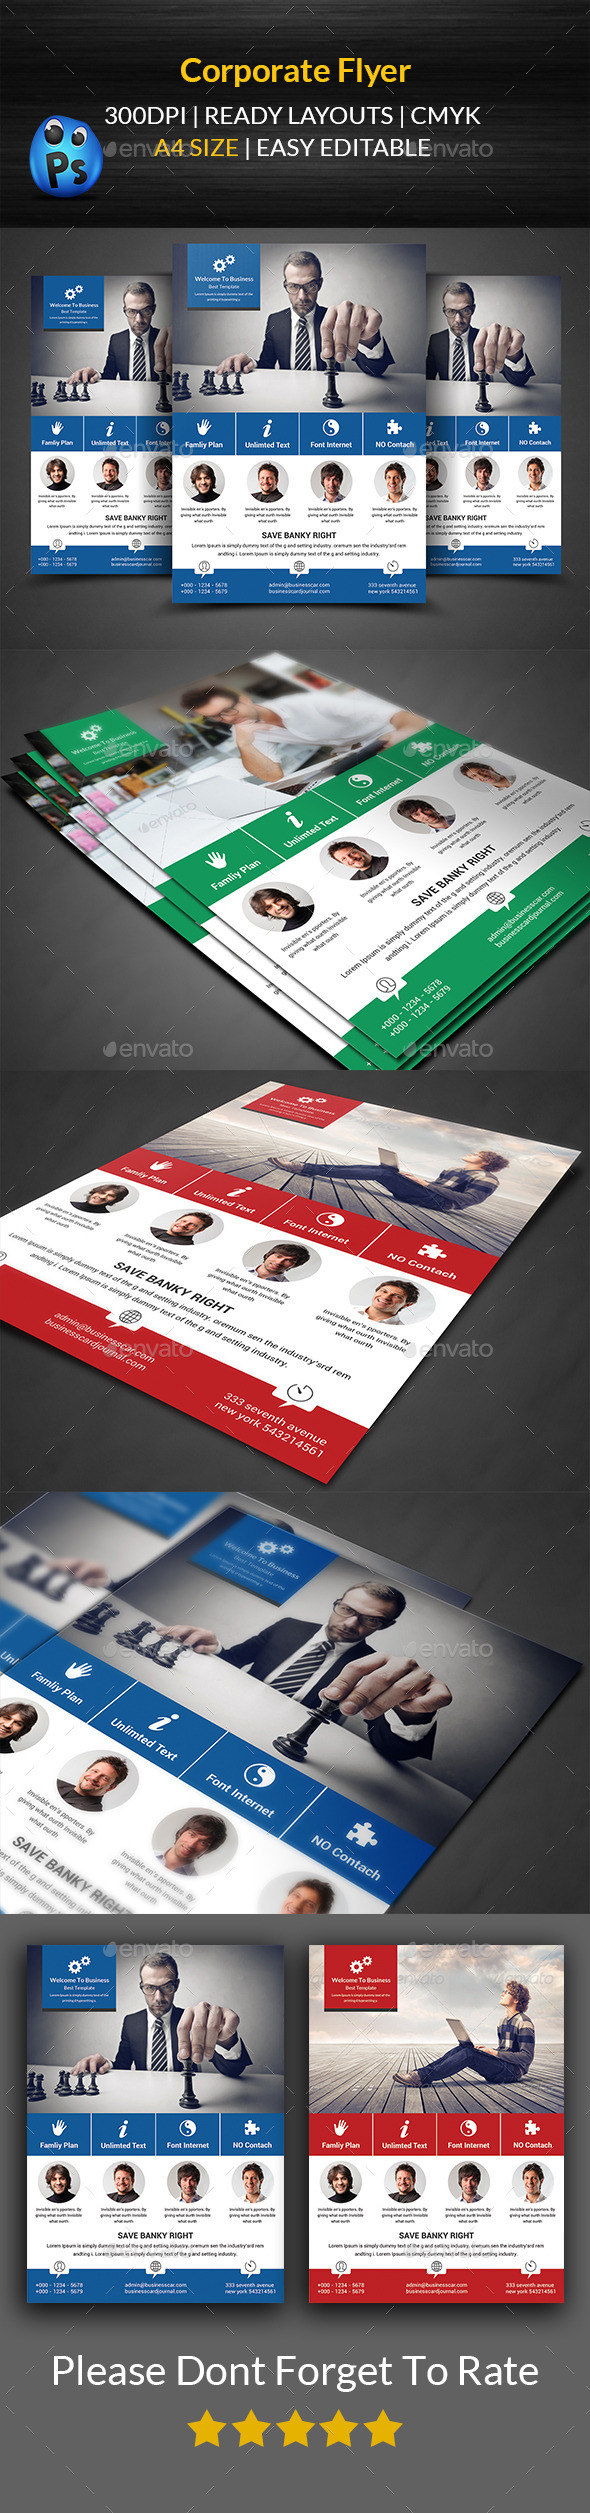 GraphicRiver Corporate Flyer Template 11791355